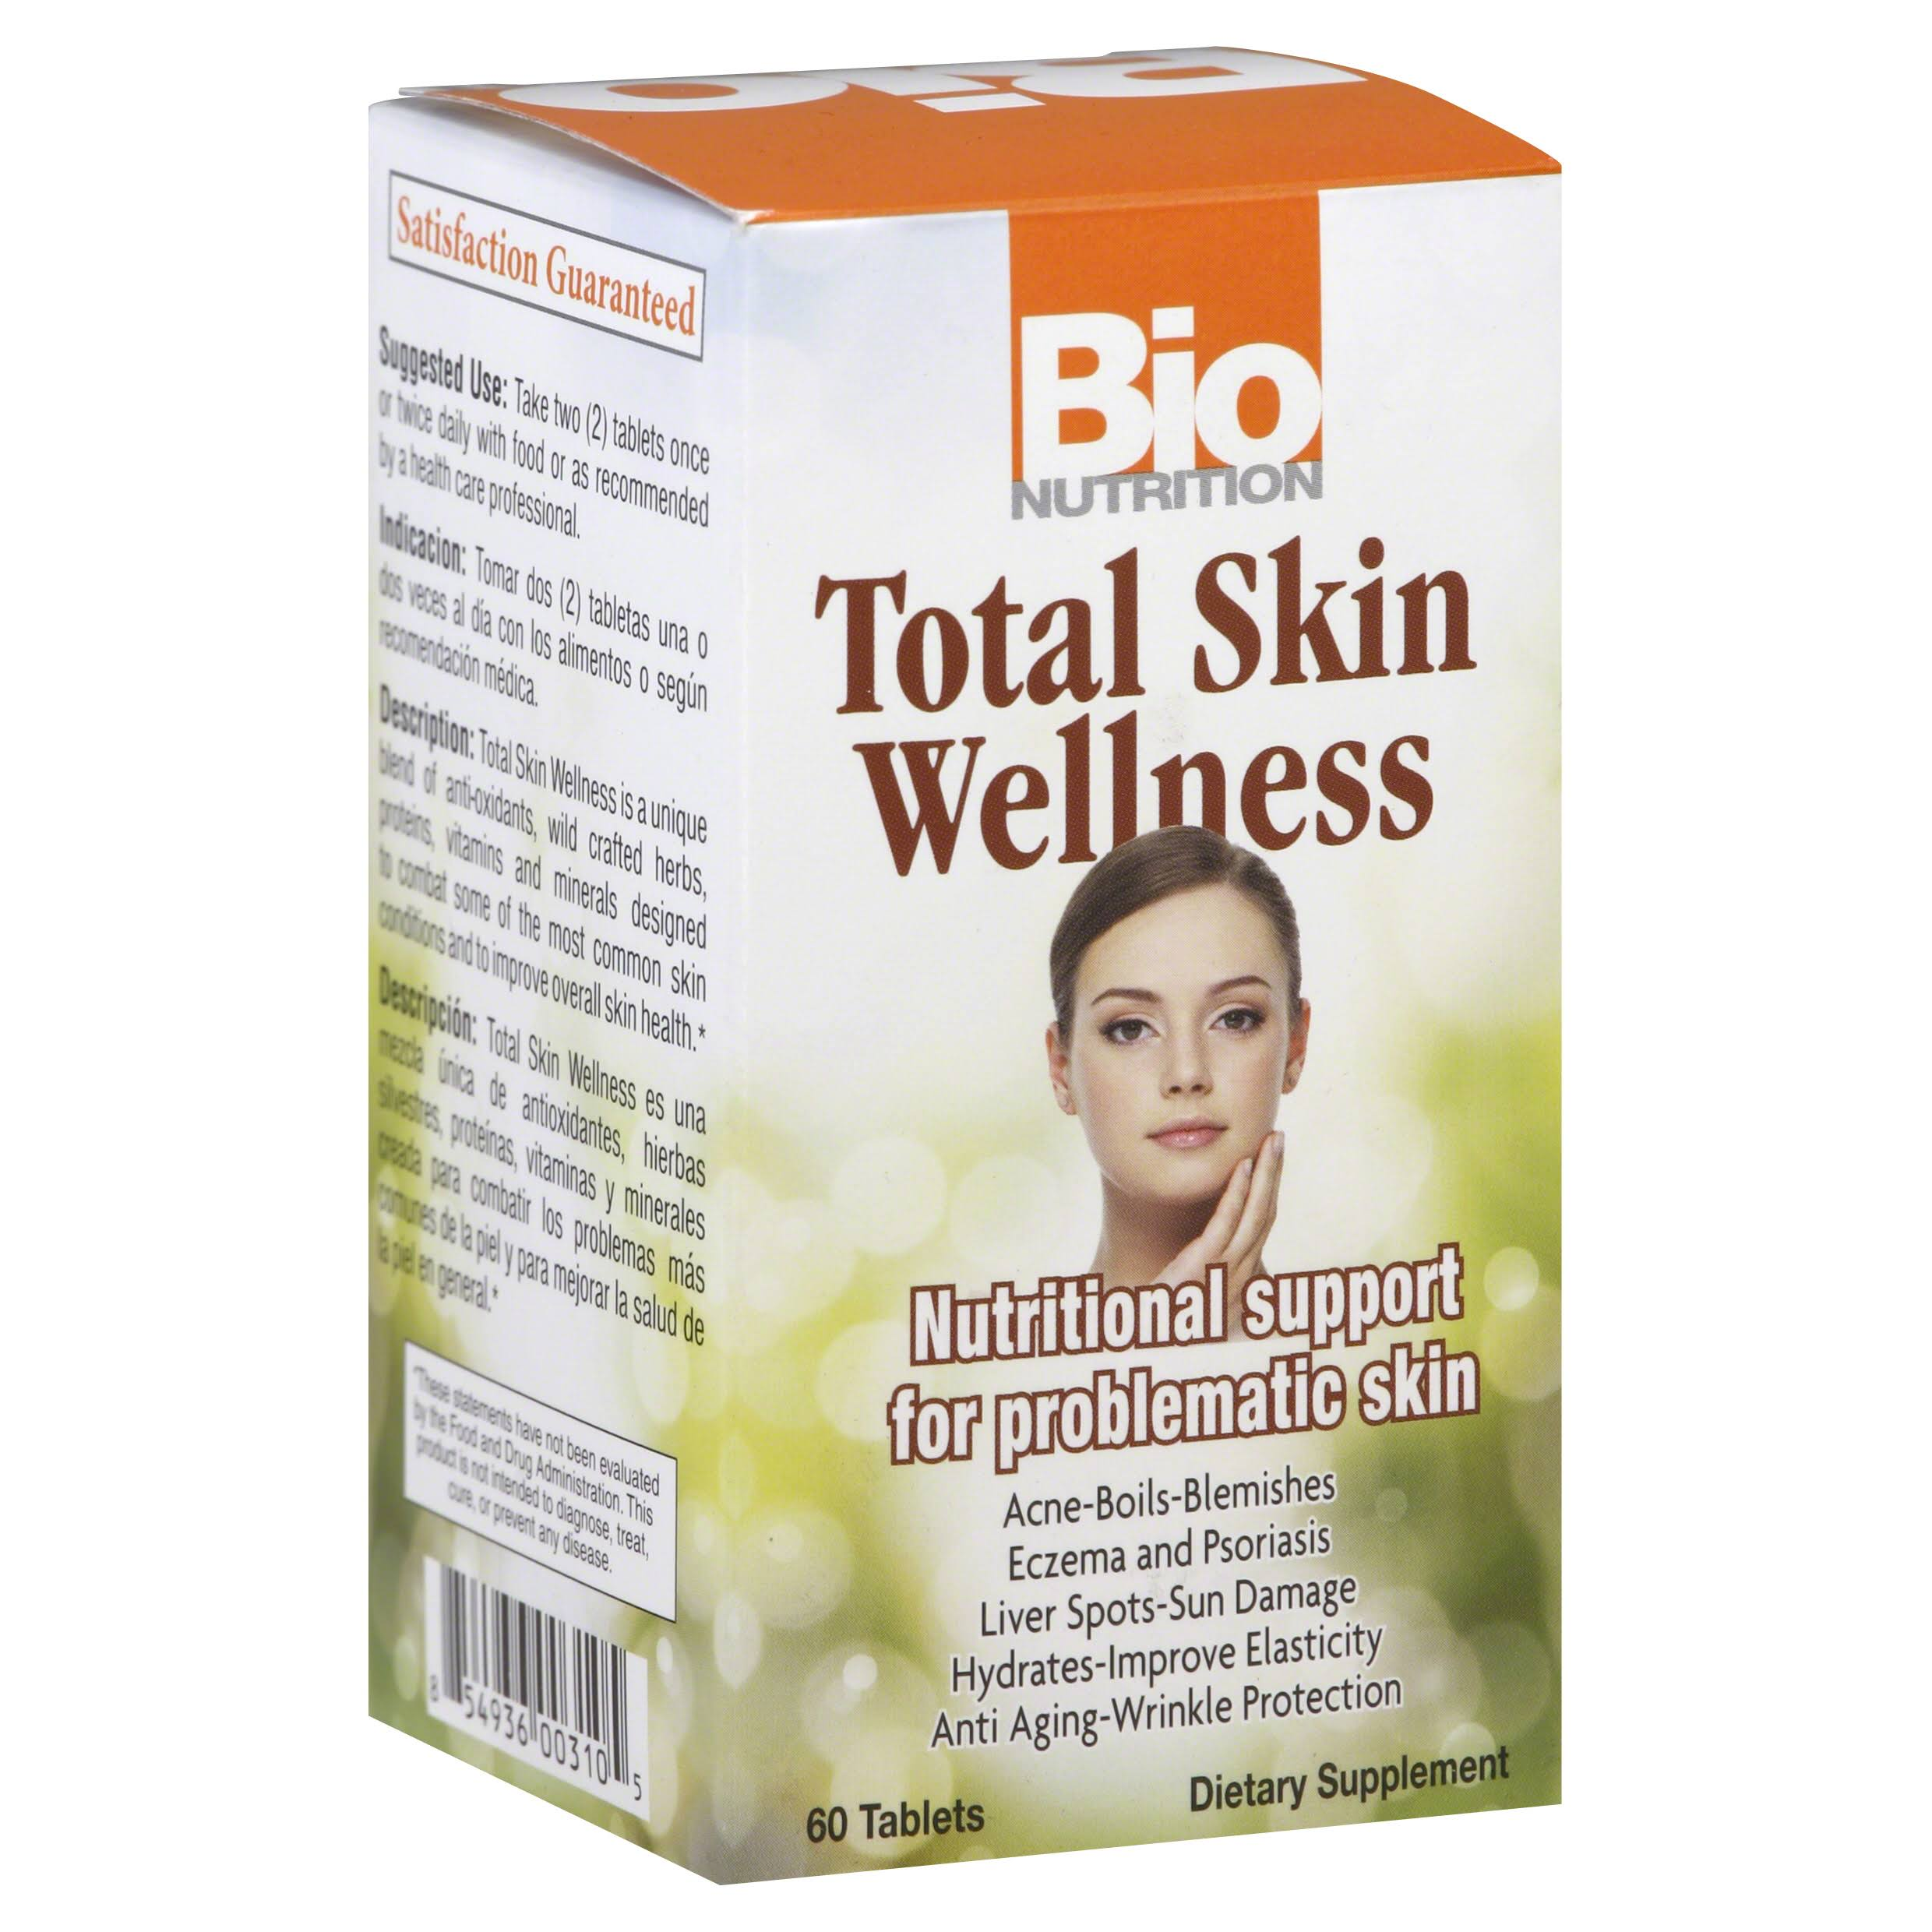 Bio Nutrition Total Skin Wellness Tablets - x60